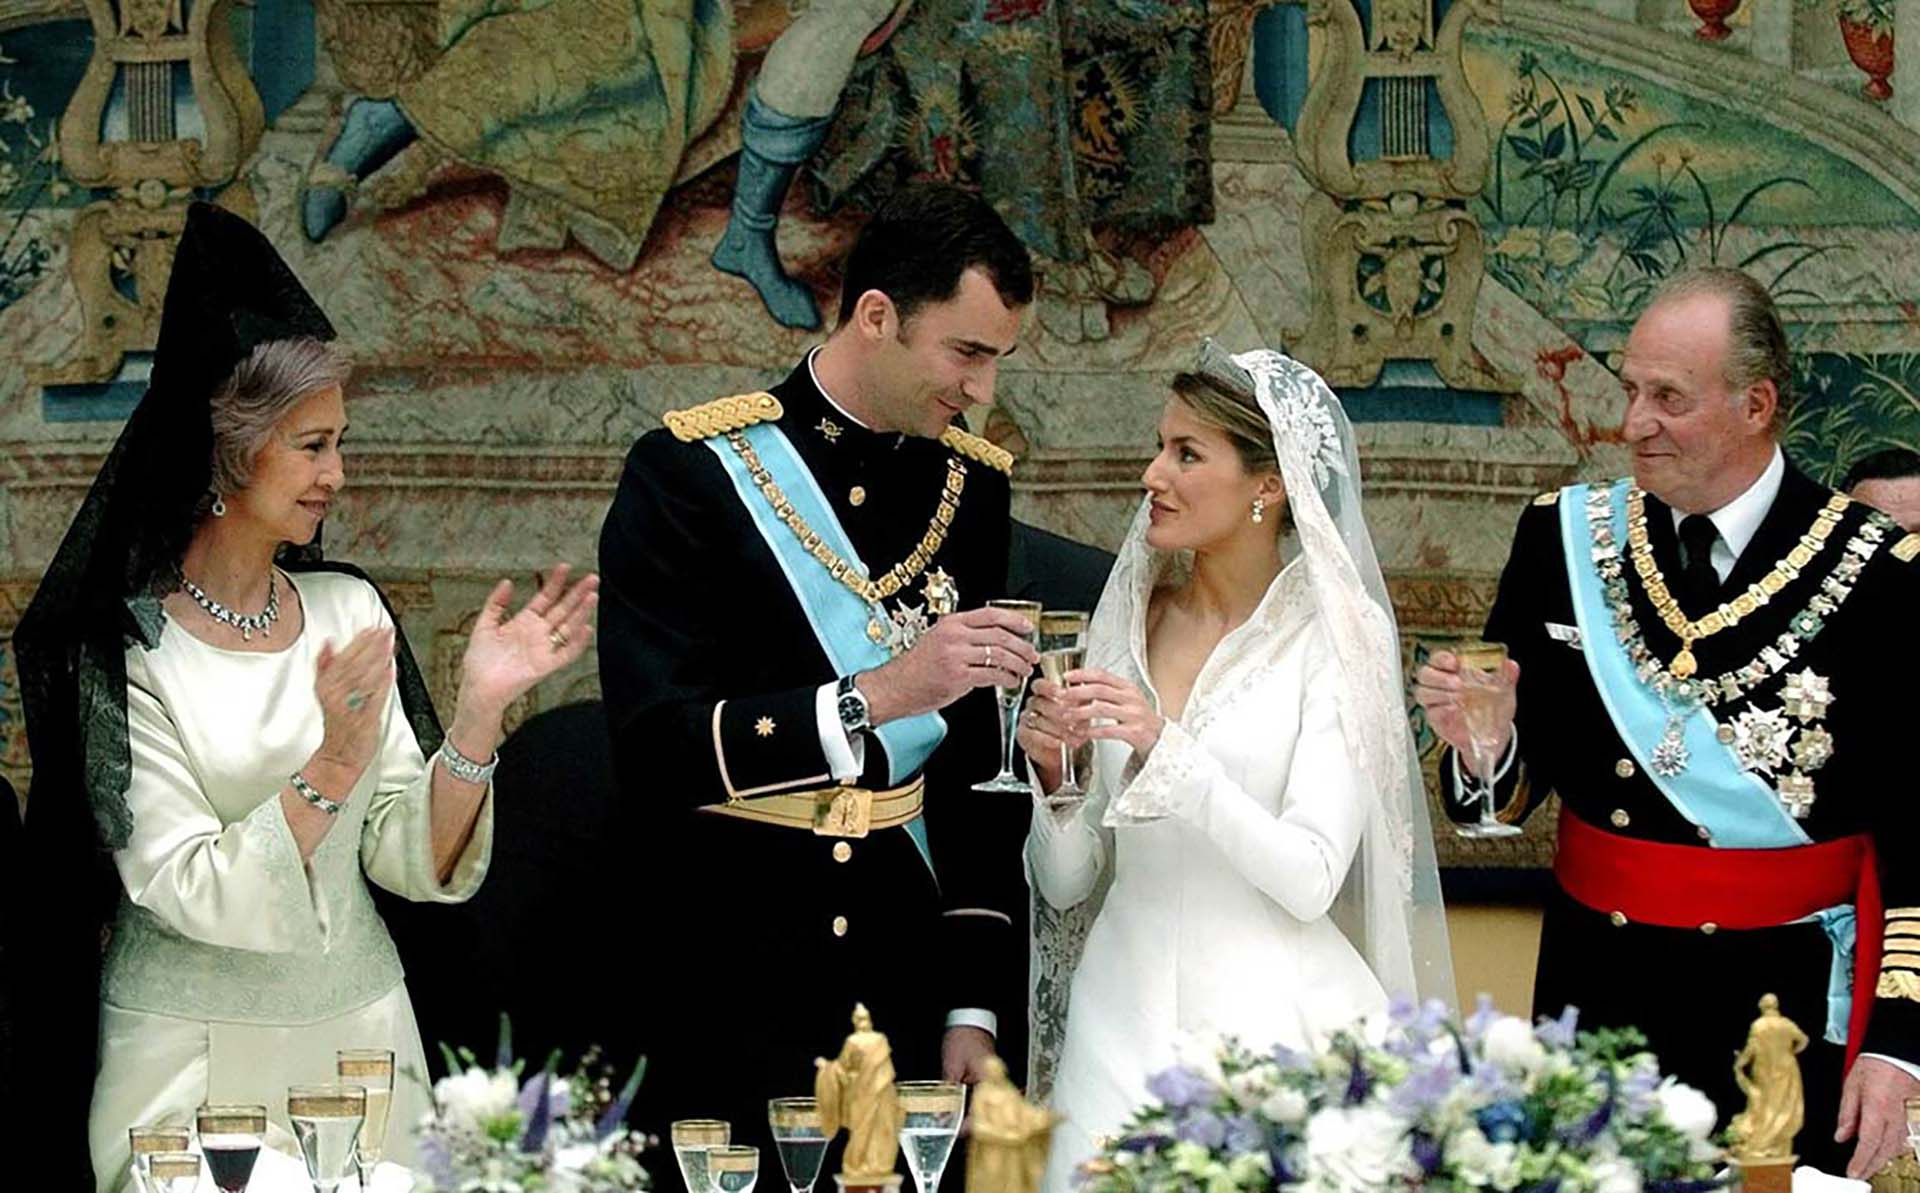 Spanish Crown Prince Felipe (2nd L) and his bride Letizia Ortiz, Princess of Asturias, (CR) toast as King Juan Carlos (R) and Queen Sofia look on at the start of their wedding banquet at Madrid's Royal Palace May 22, 2004. [Prince Felipe married former television presenter Ortiz in a glittering ceremony symbolising a new dawn for Spain two months after the deadly Madrid train bombings.]